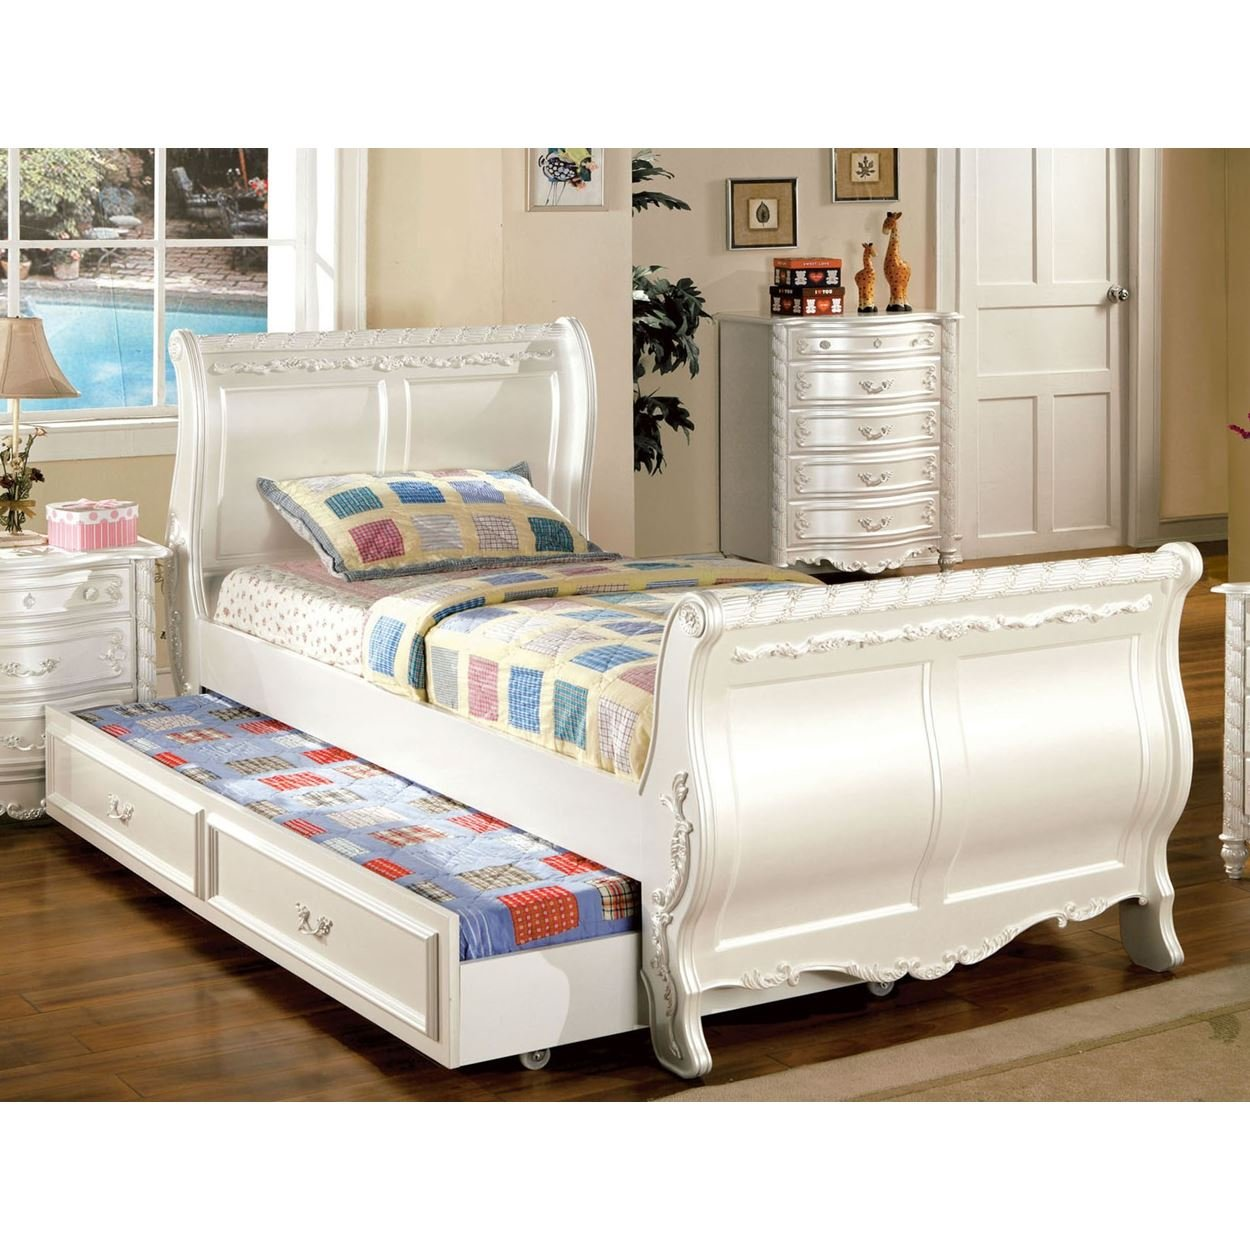 Cheap White Twin Sleigh Bed Find White Twin Sleigh Bed Deals On